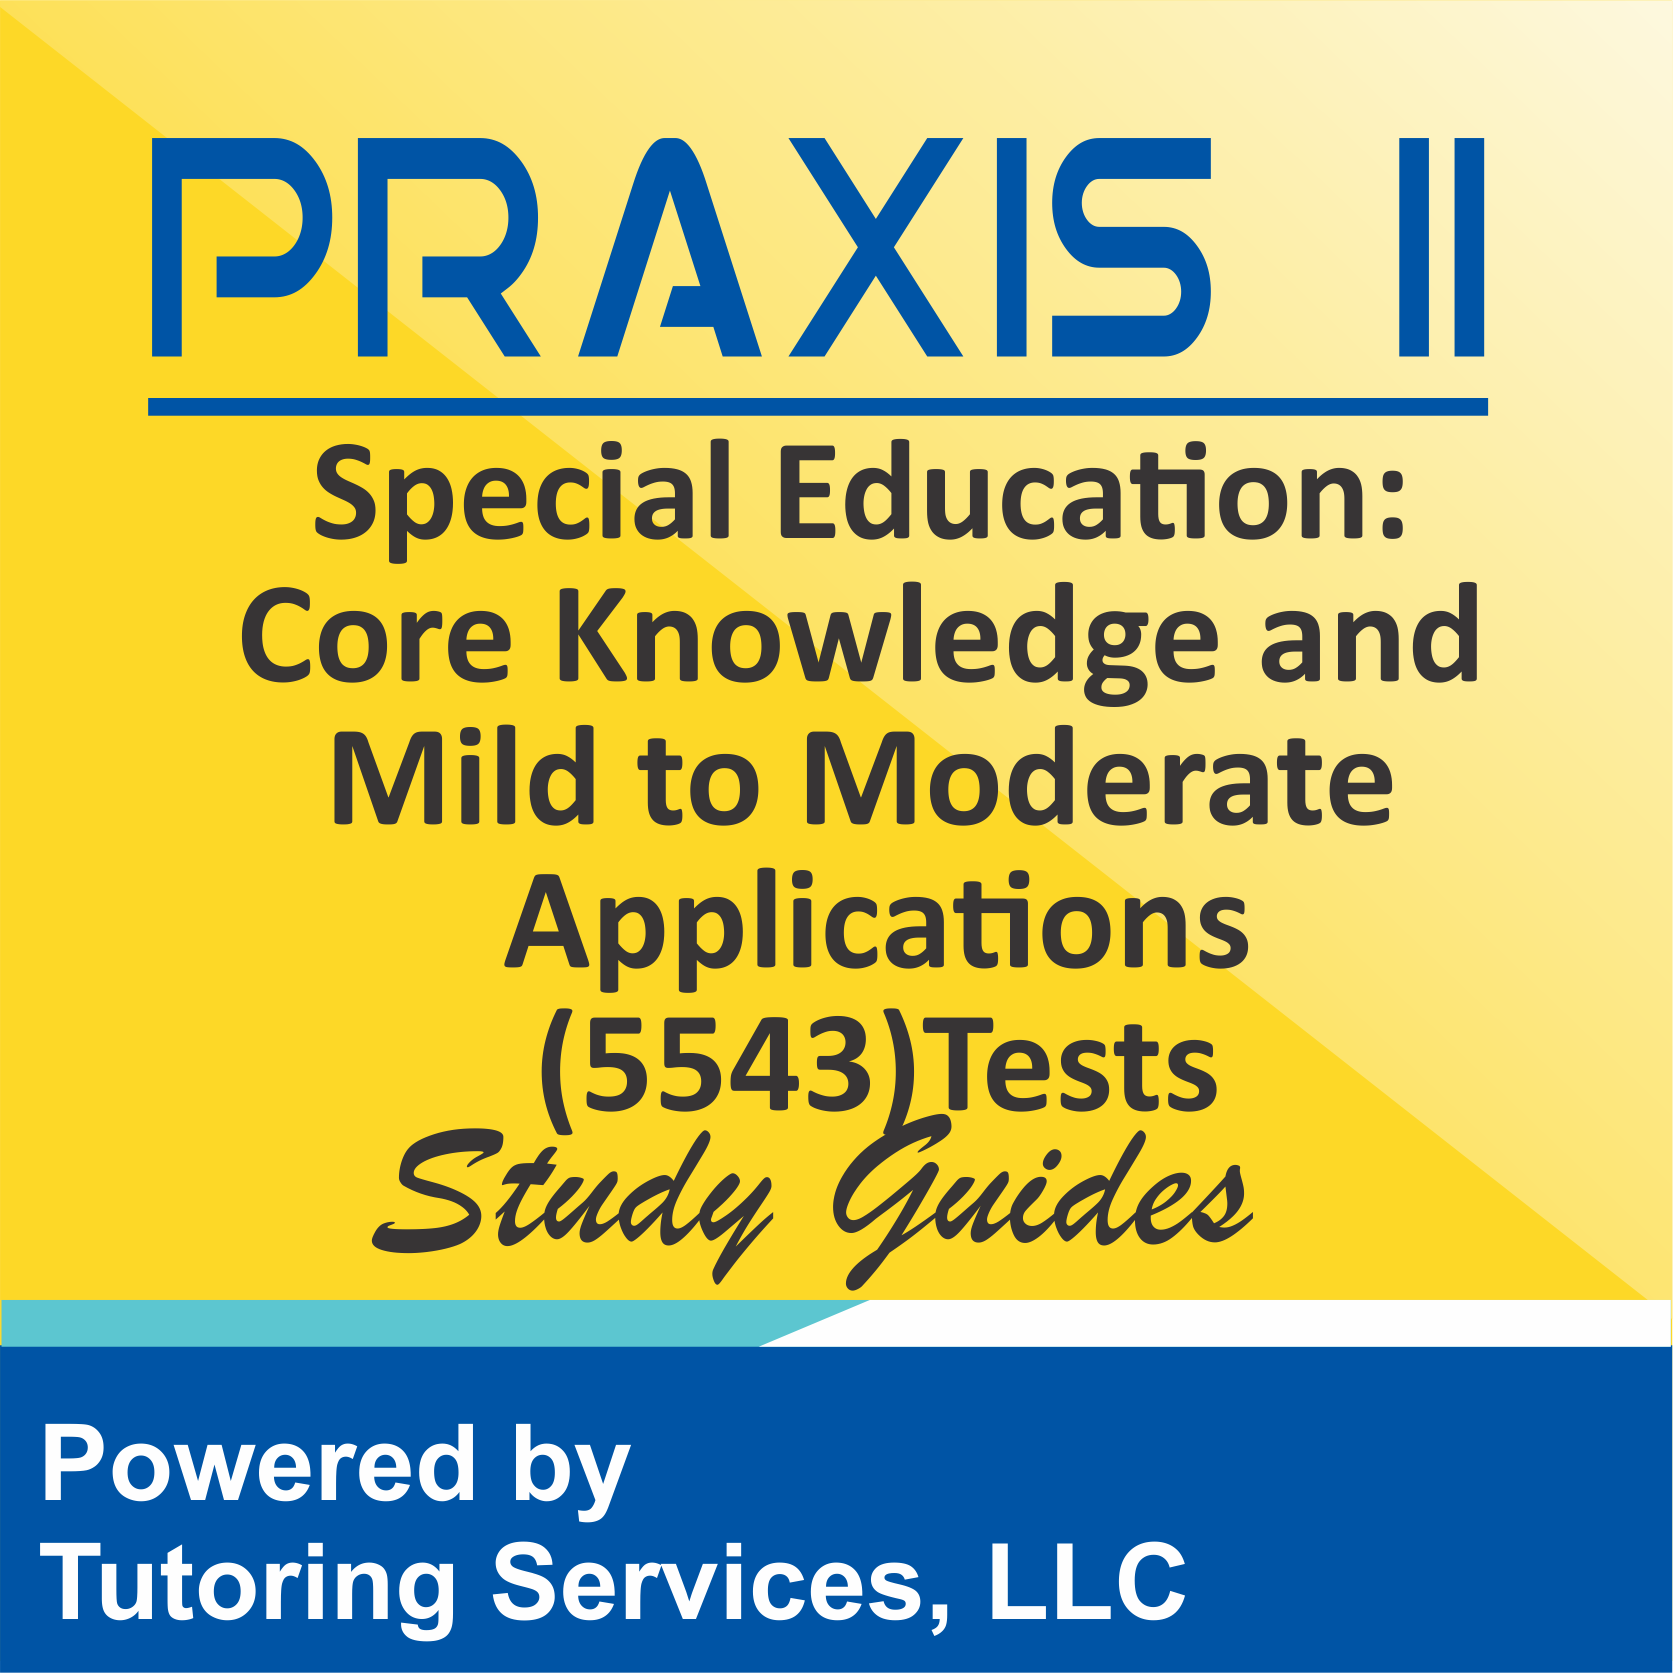 Praxis II Special Education: Core Knowledge and Mild to Moderate Applications (5543) Test